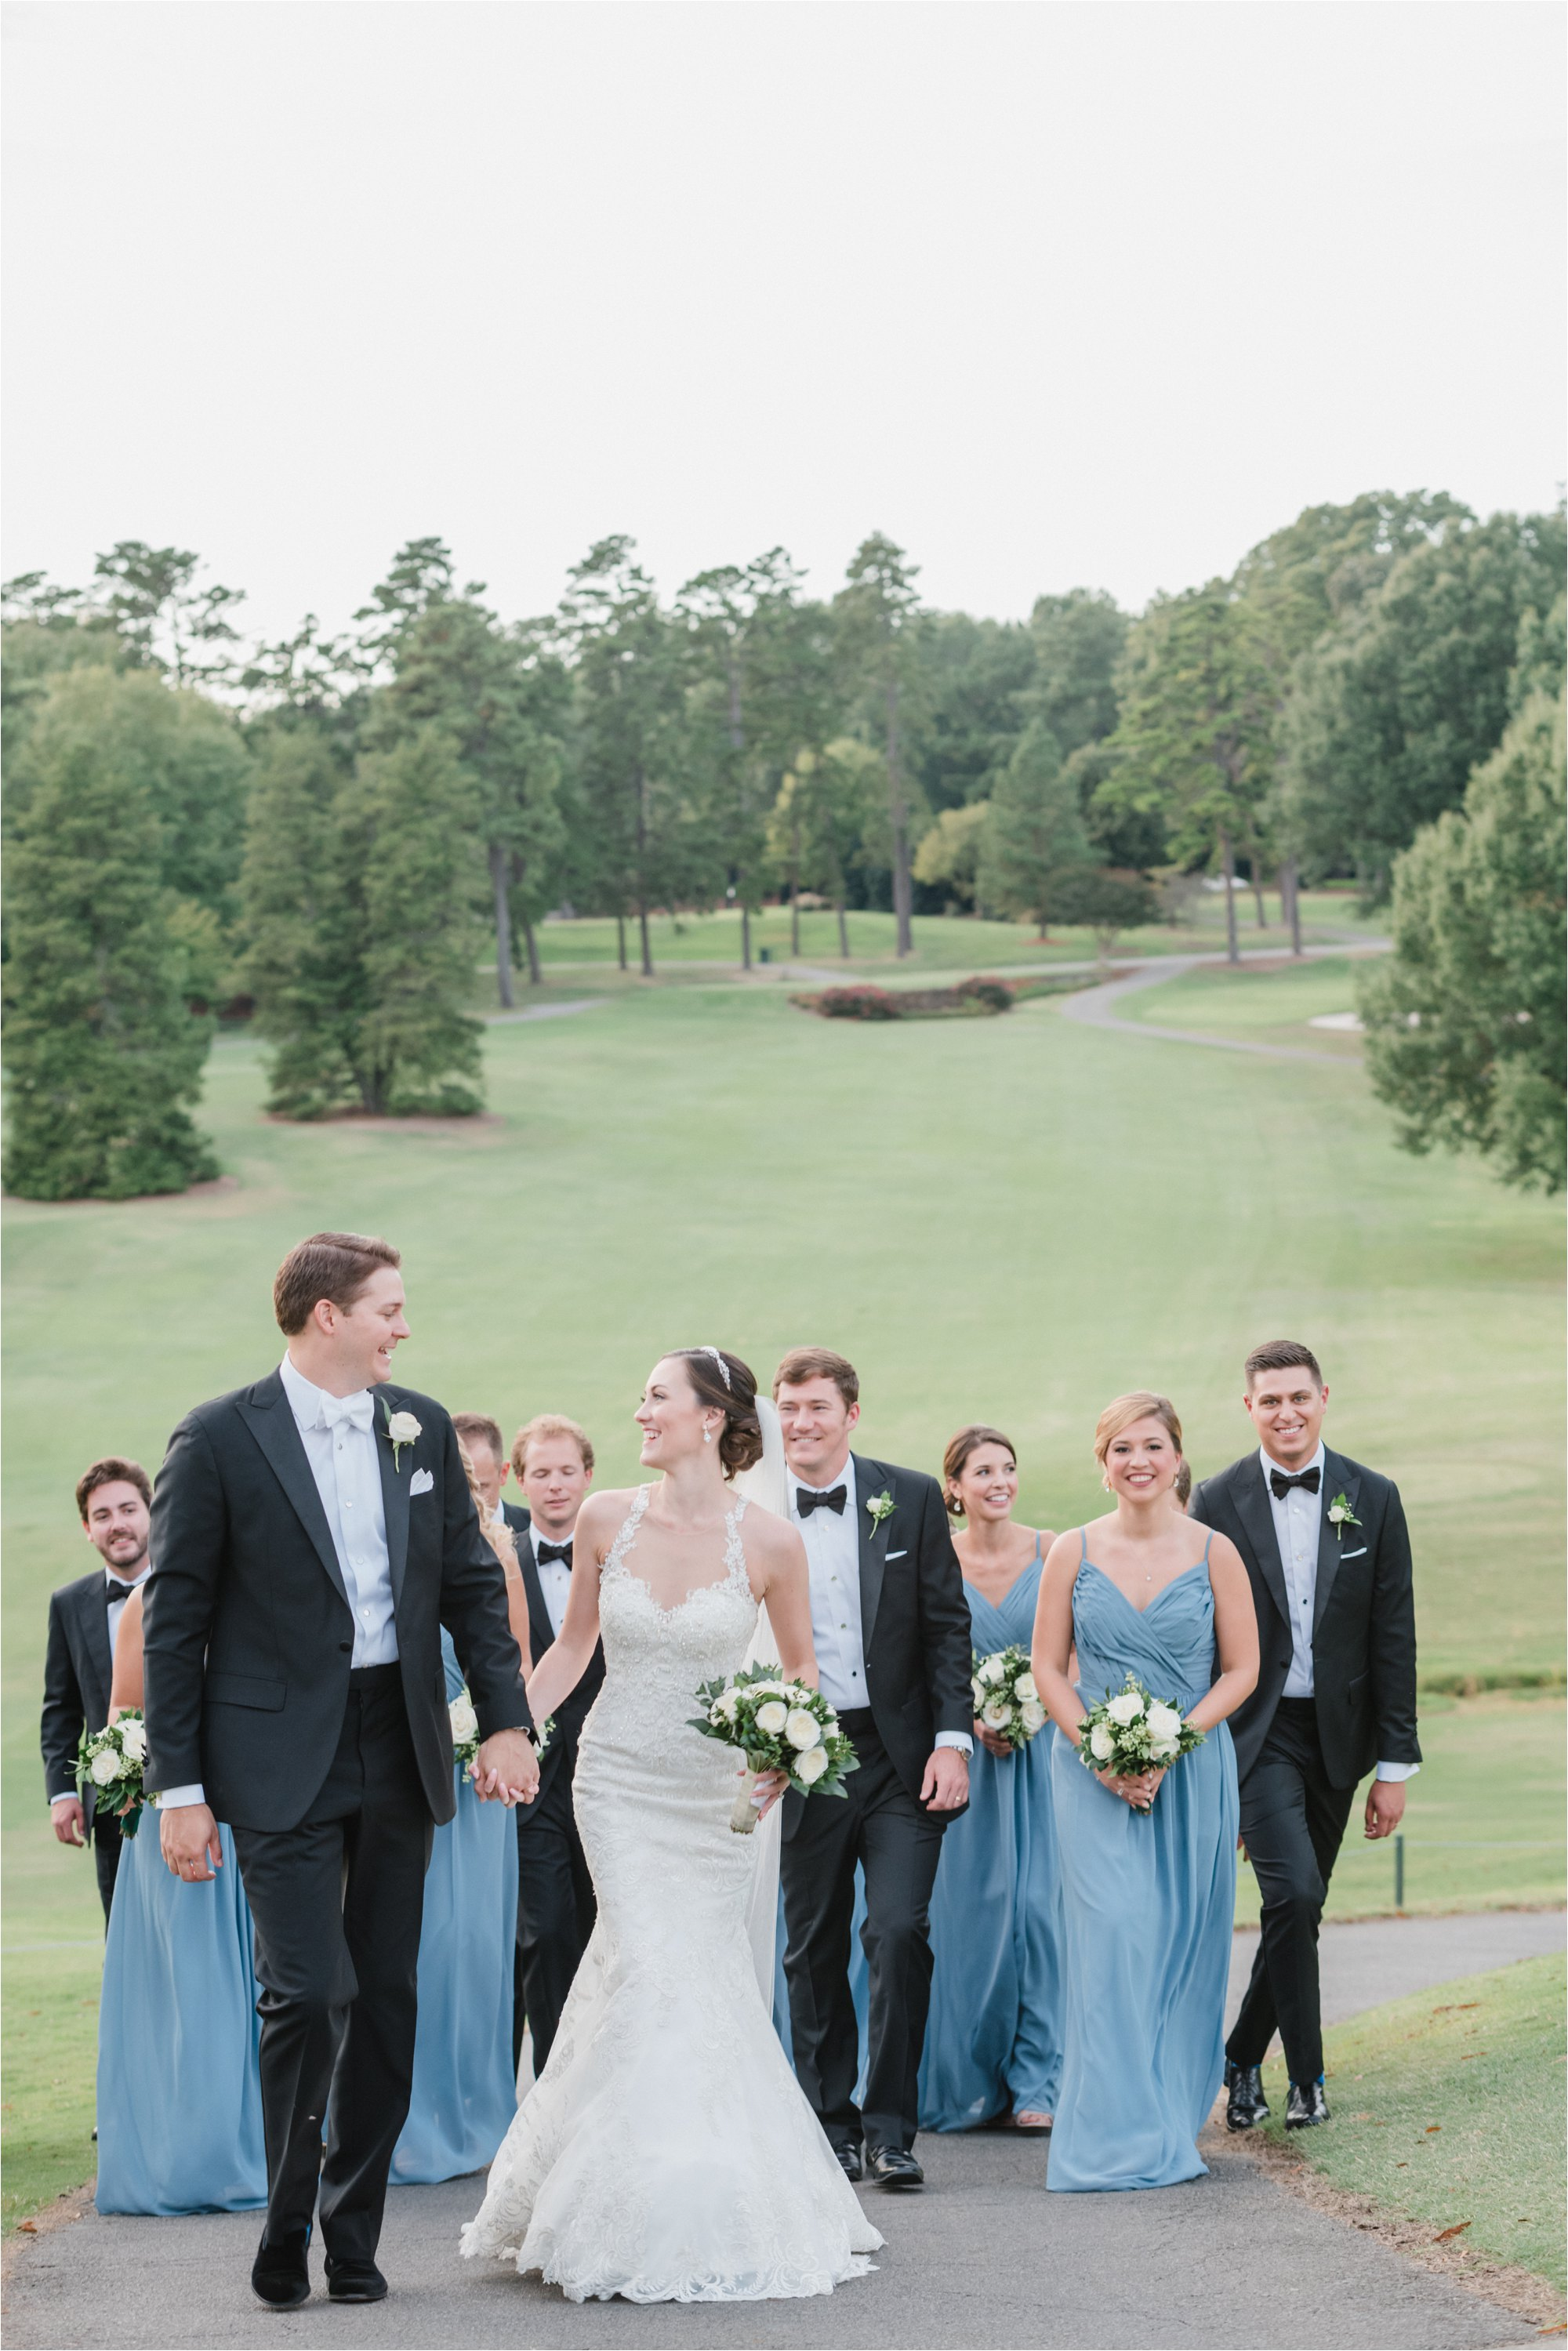 Wedding Party at Greensboro Country Club Course